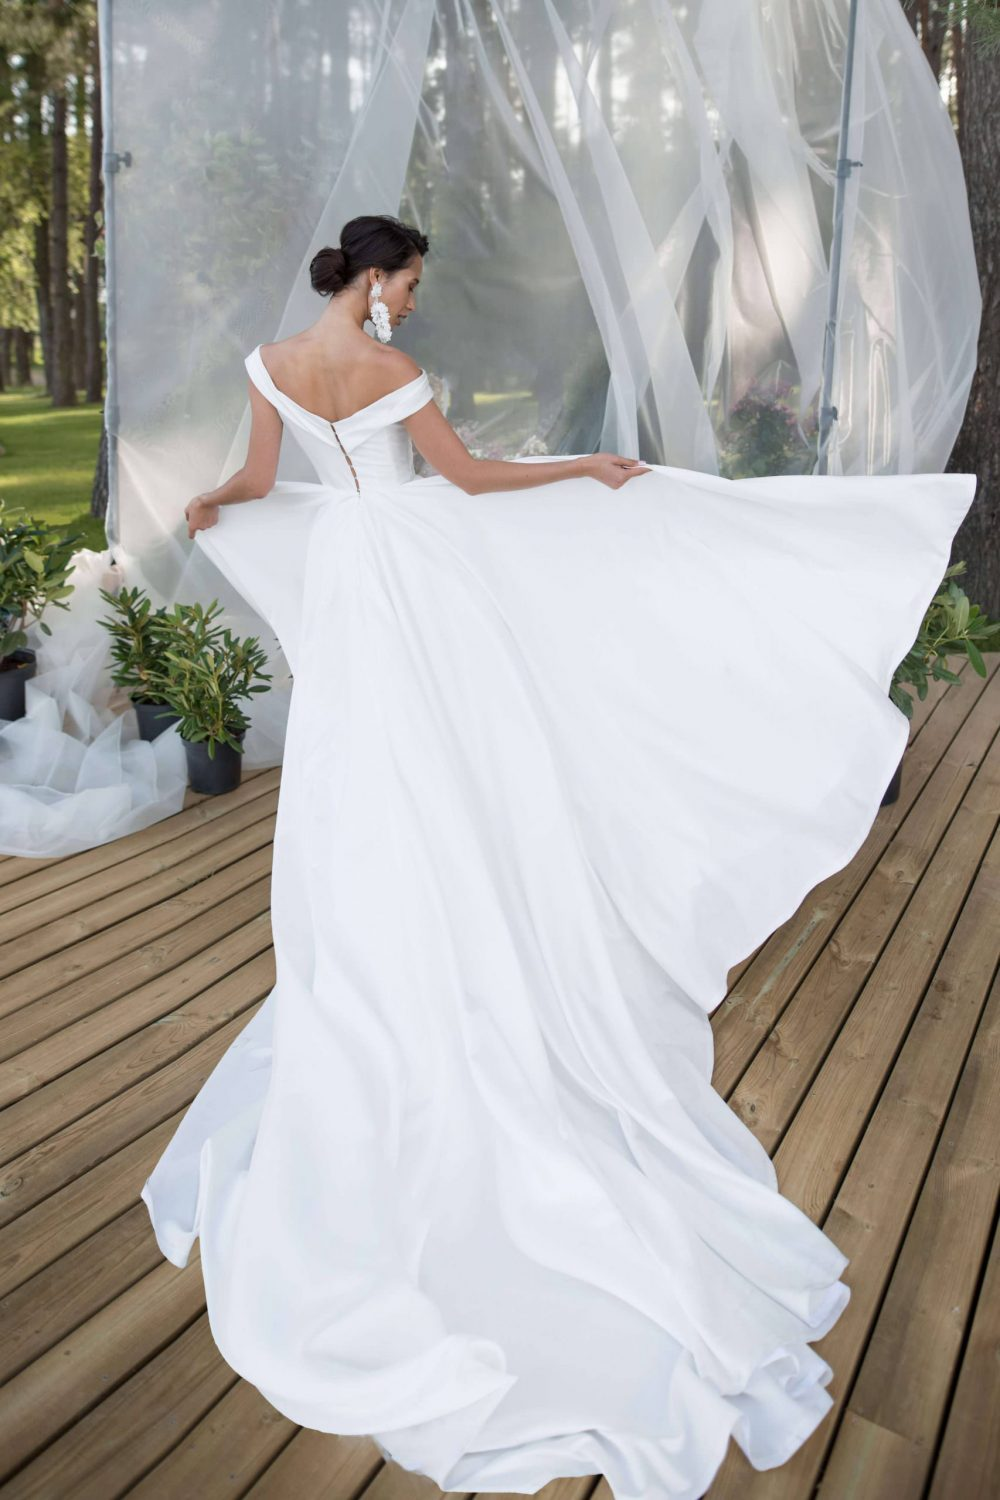 Wedding gown Blammo-Biamo Rem